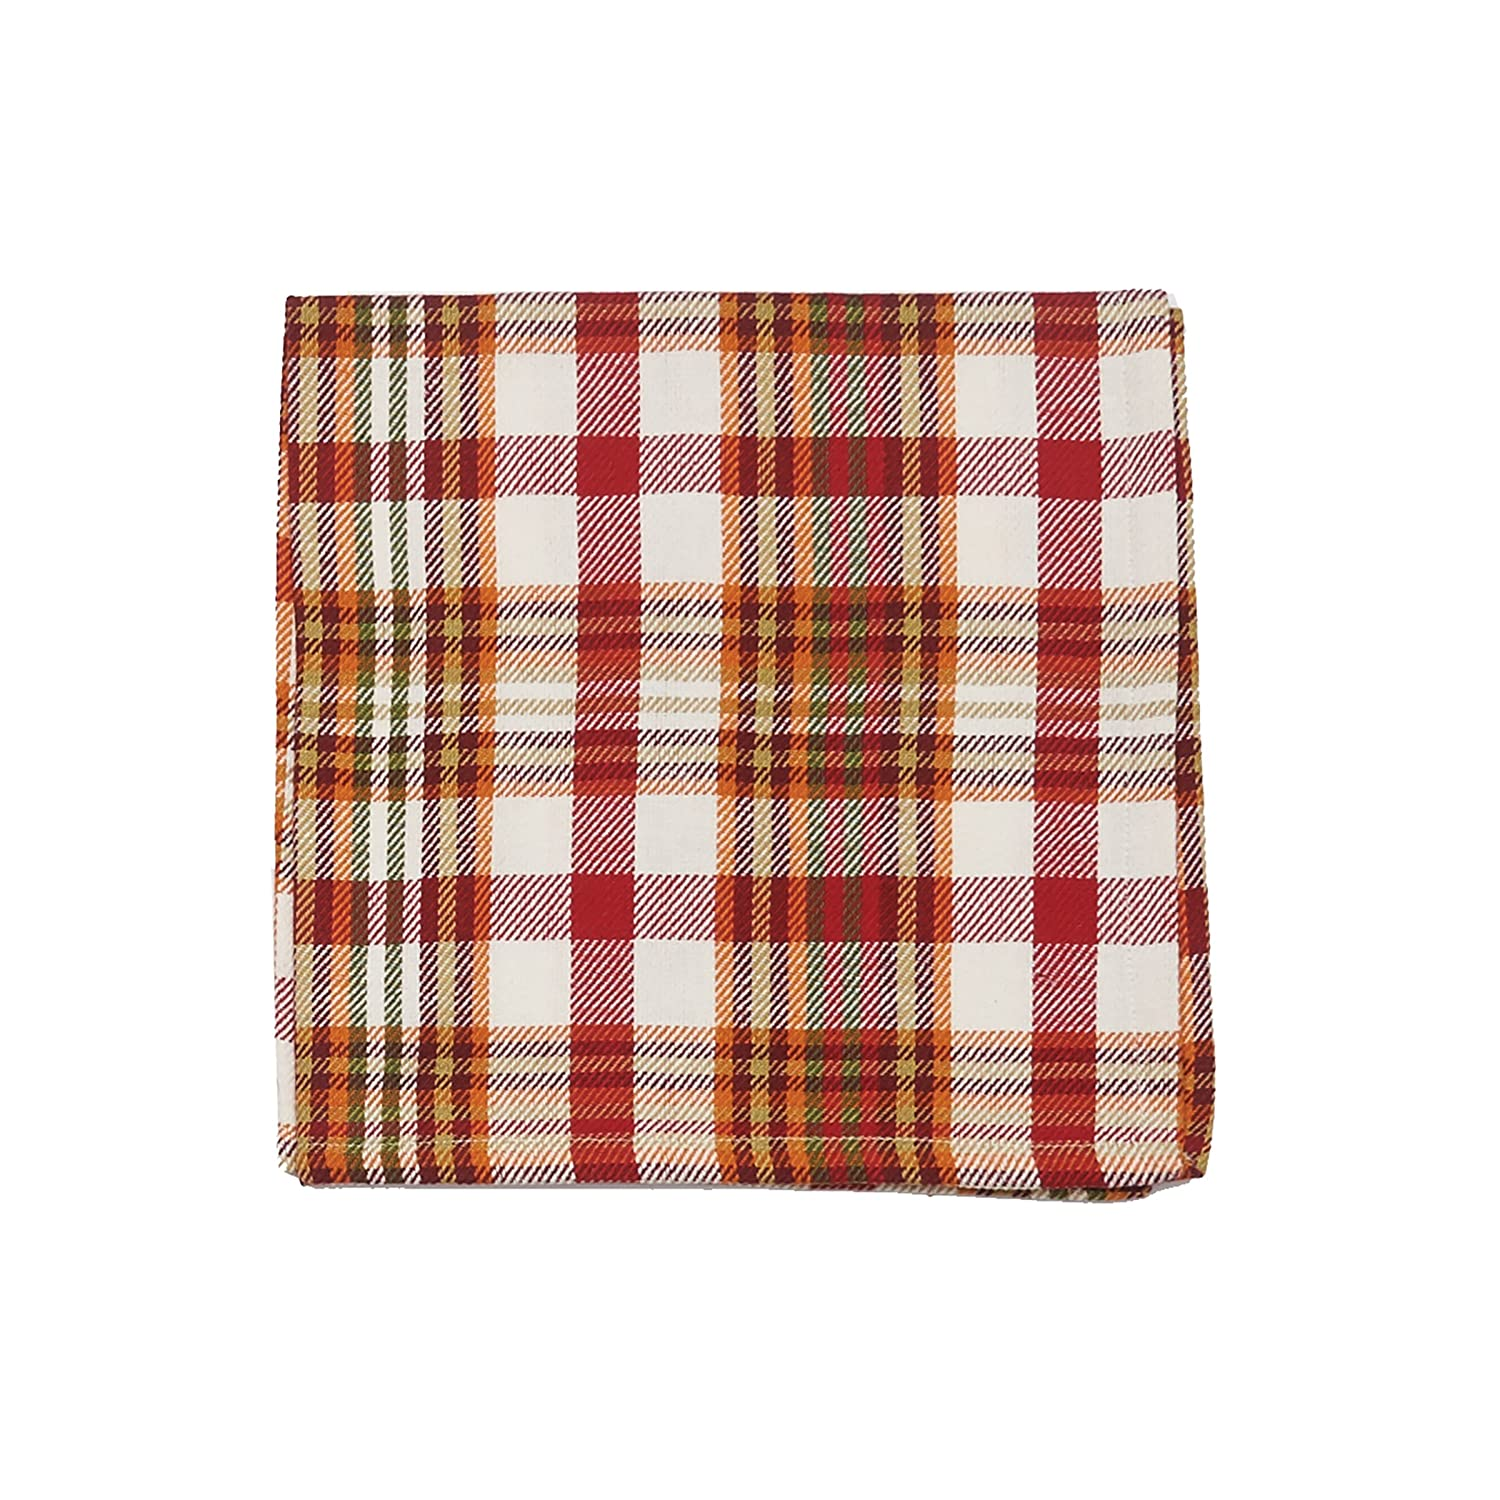 C/&F Home Abingdon Plaid Napkin 18x18 Set of 4 Napkin Set of 4 Abingdon Plaid